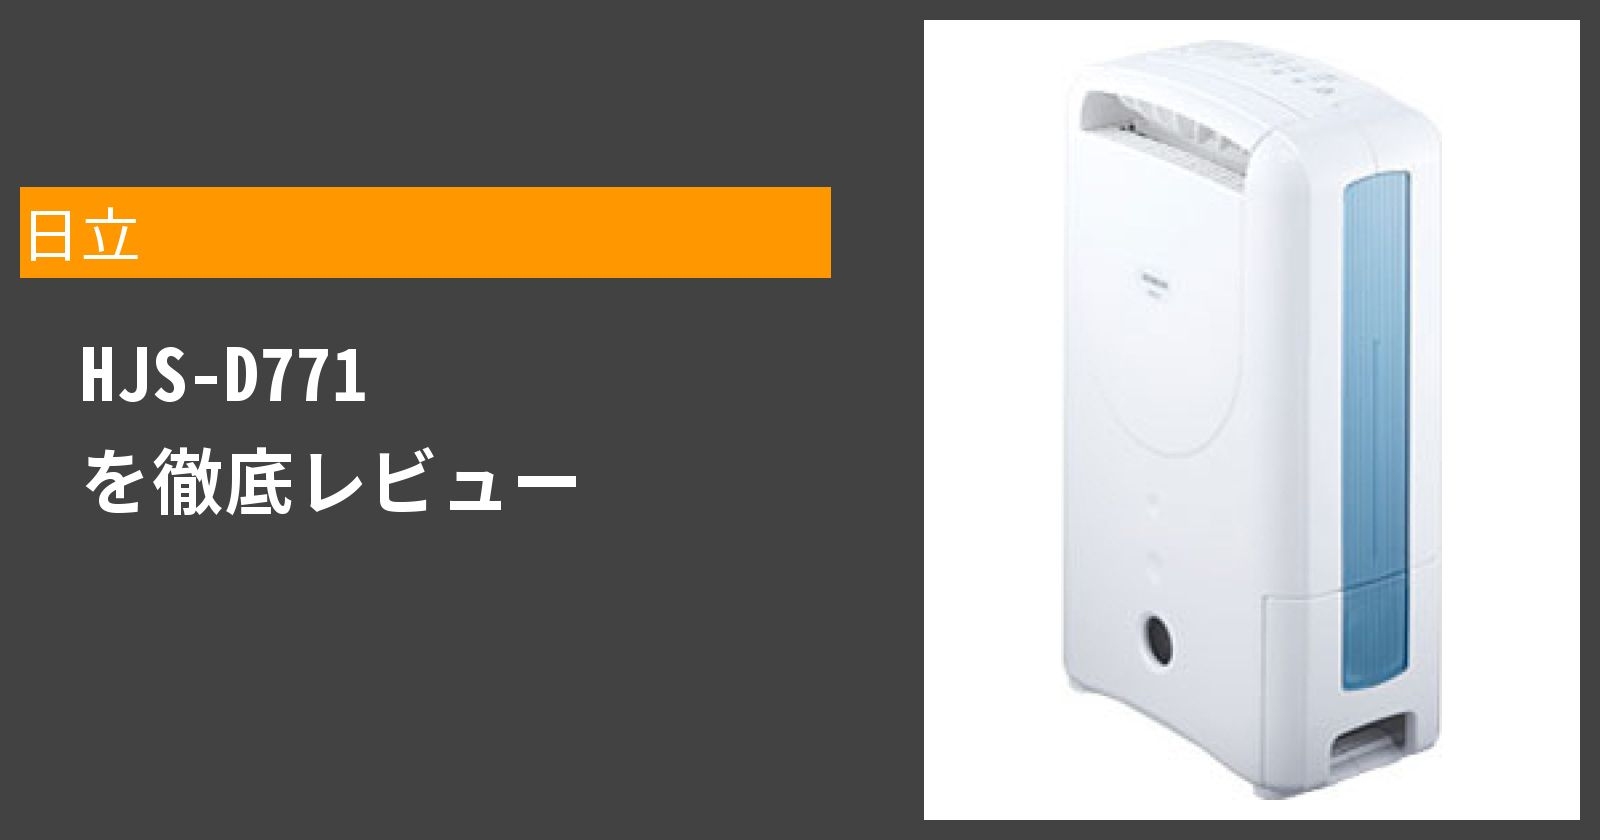 HJS-D771を徹底評価